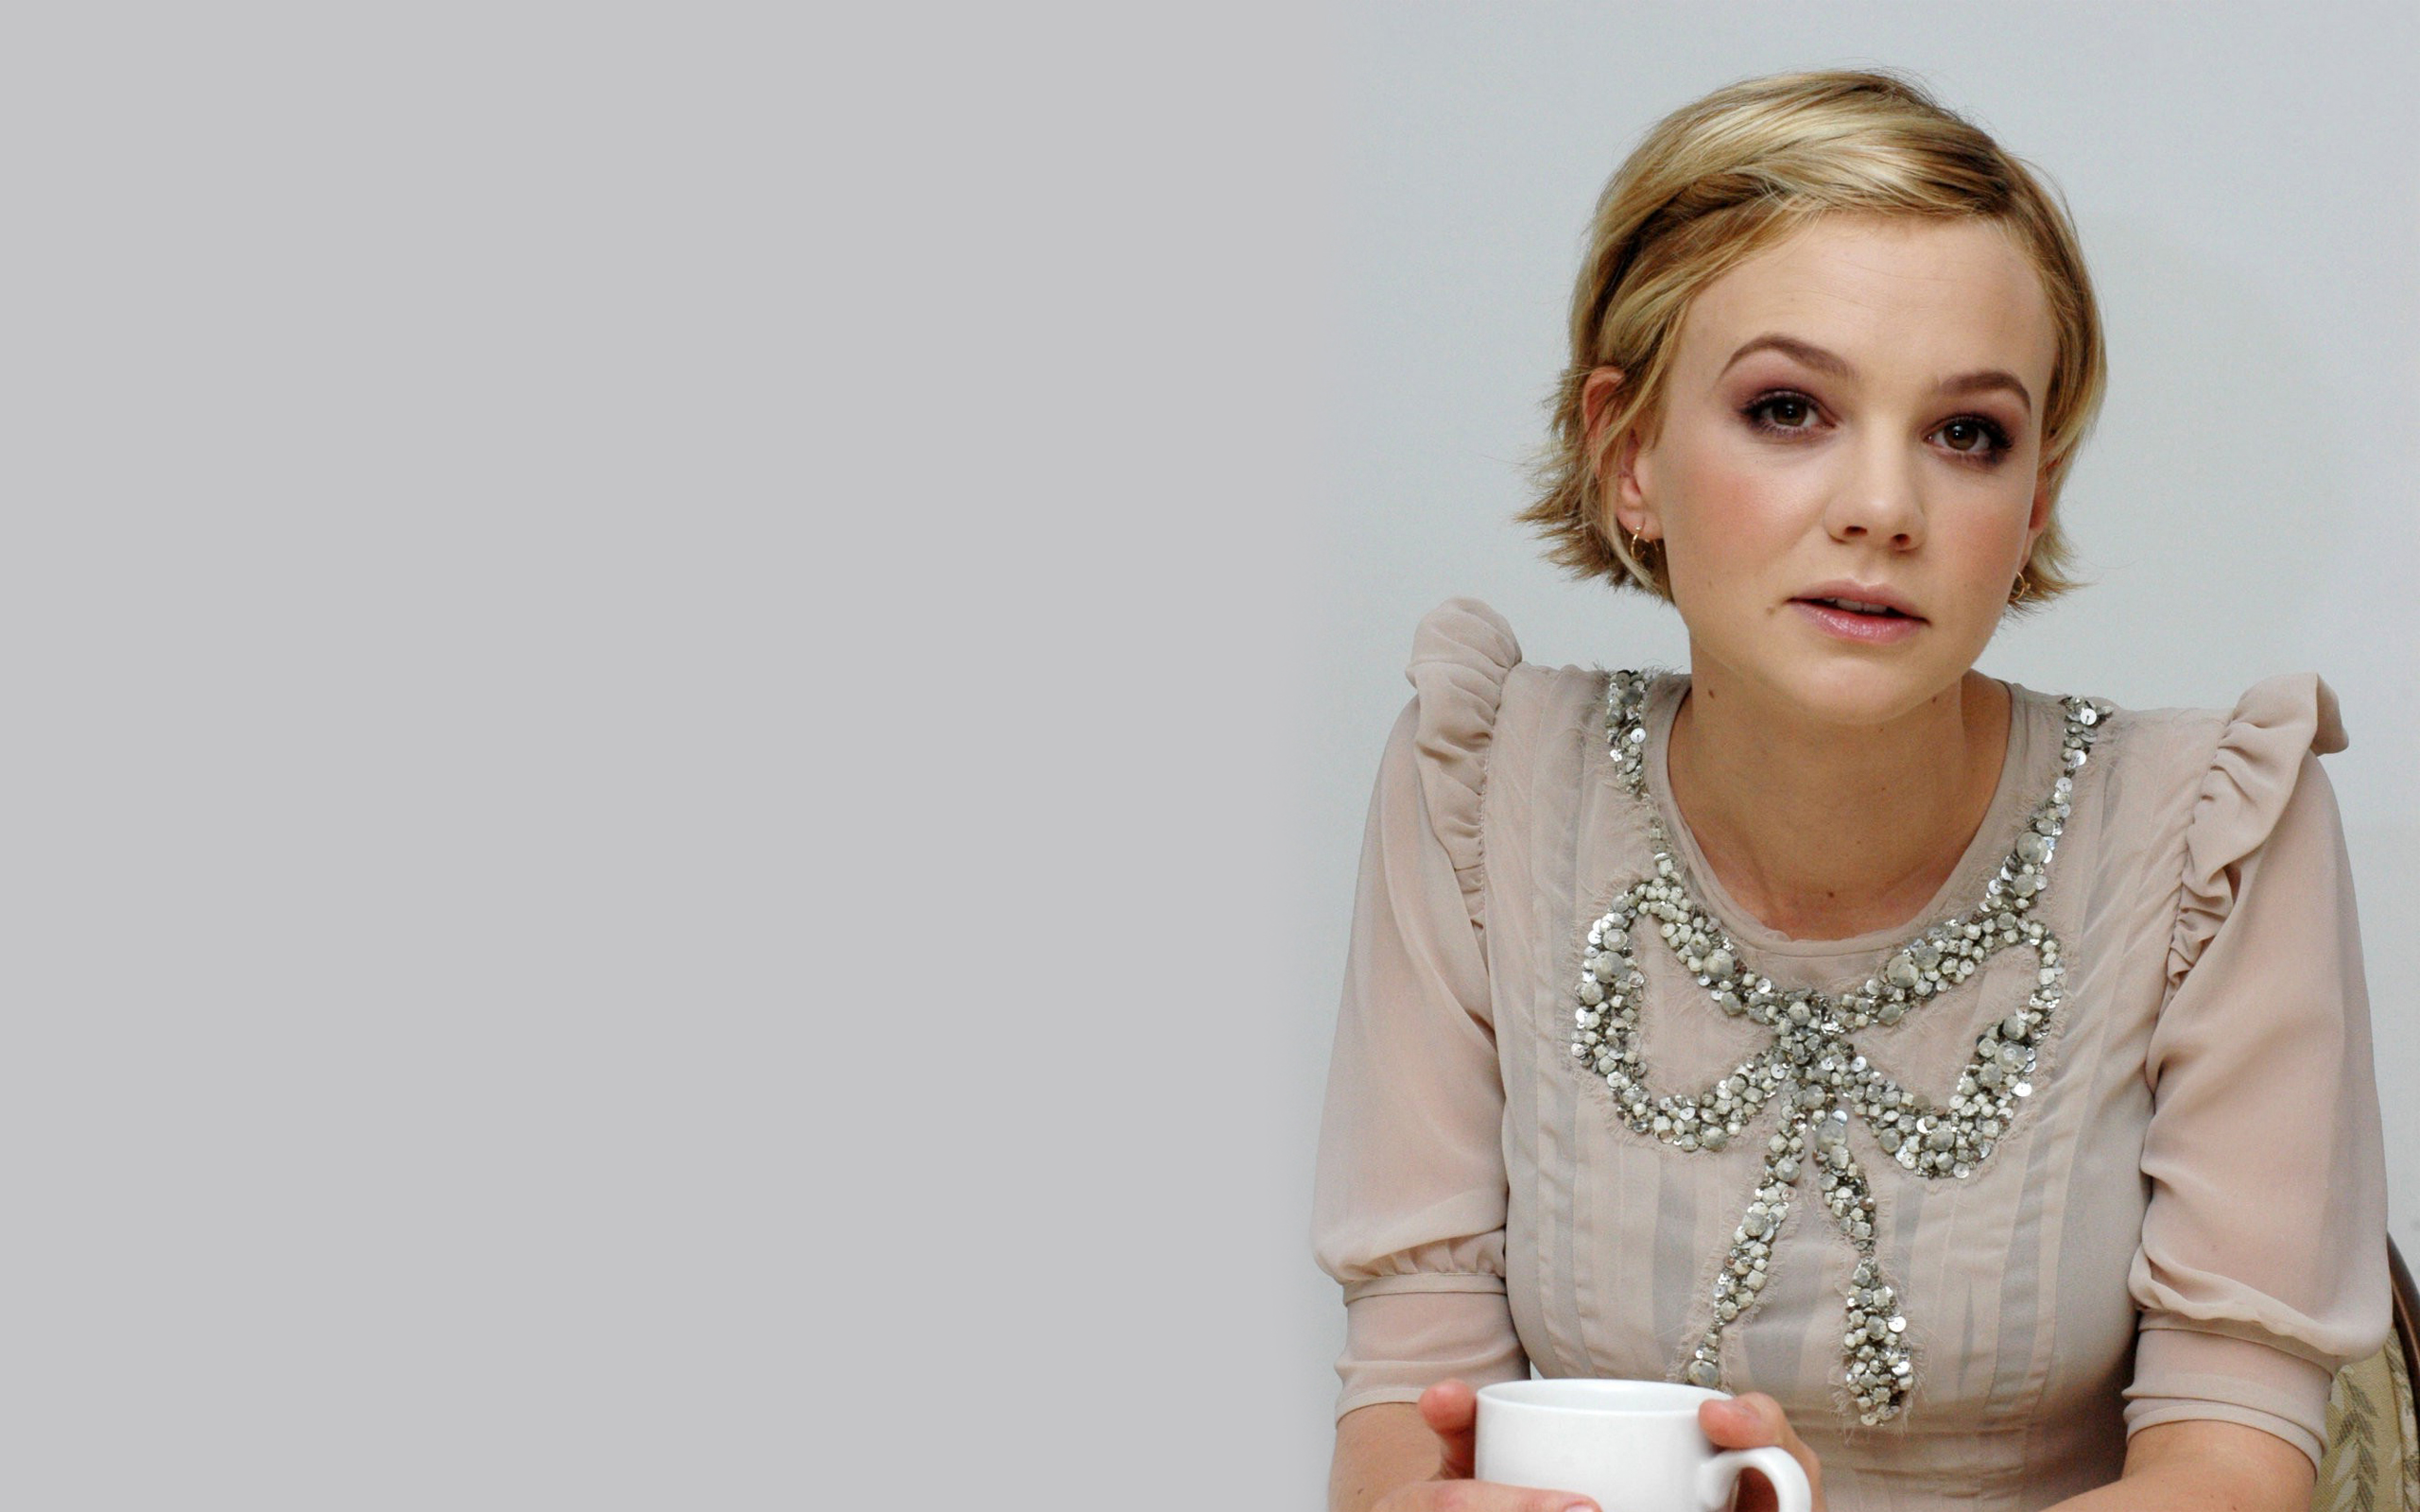 Free Carey Mulligan Wallpaper 22369 1920x1200 px